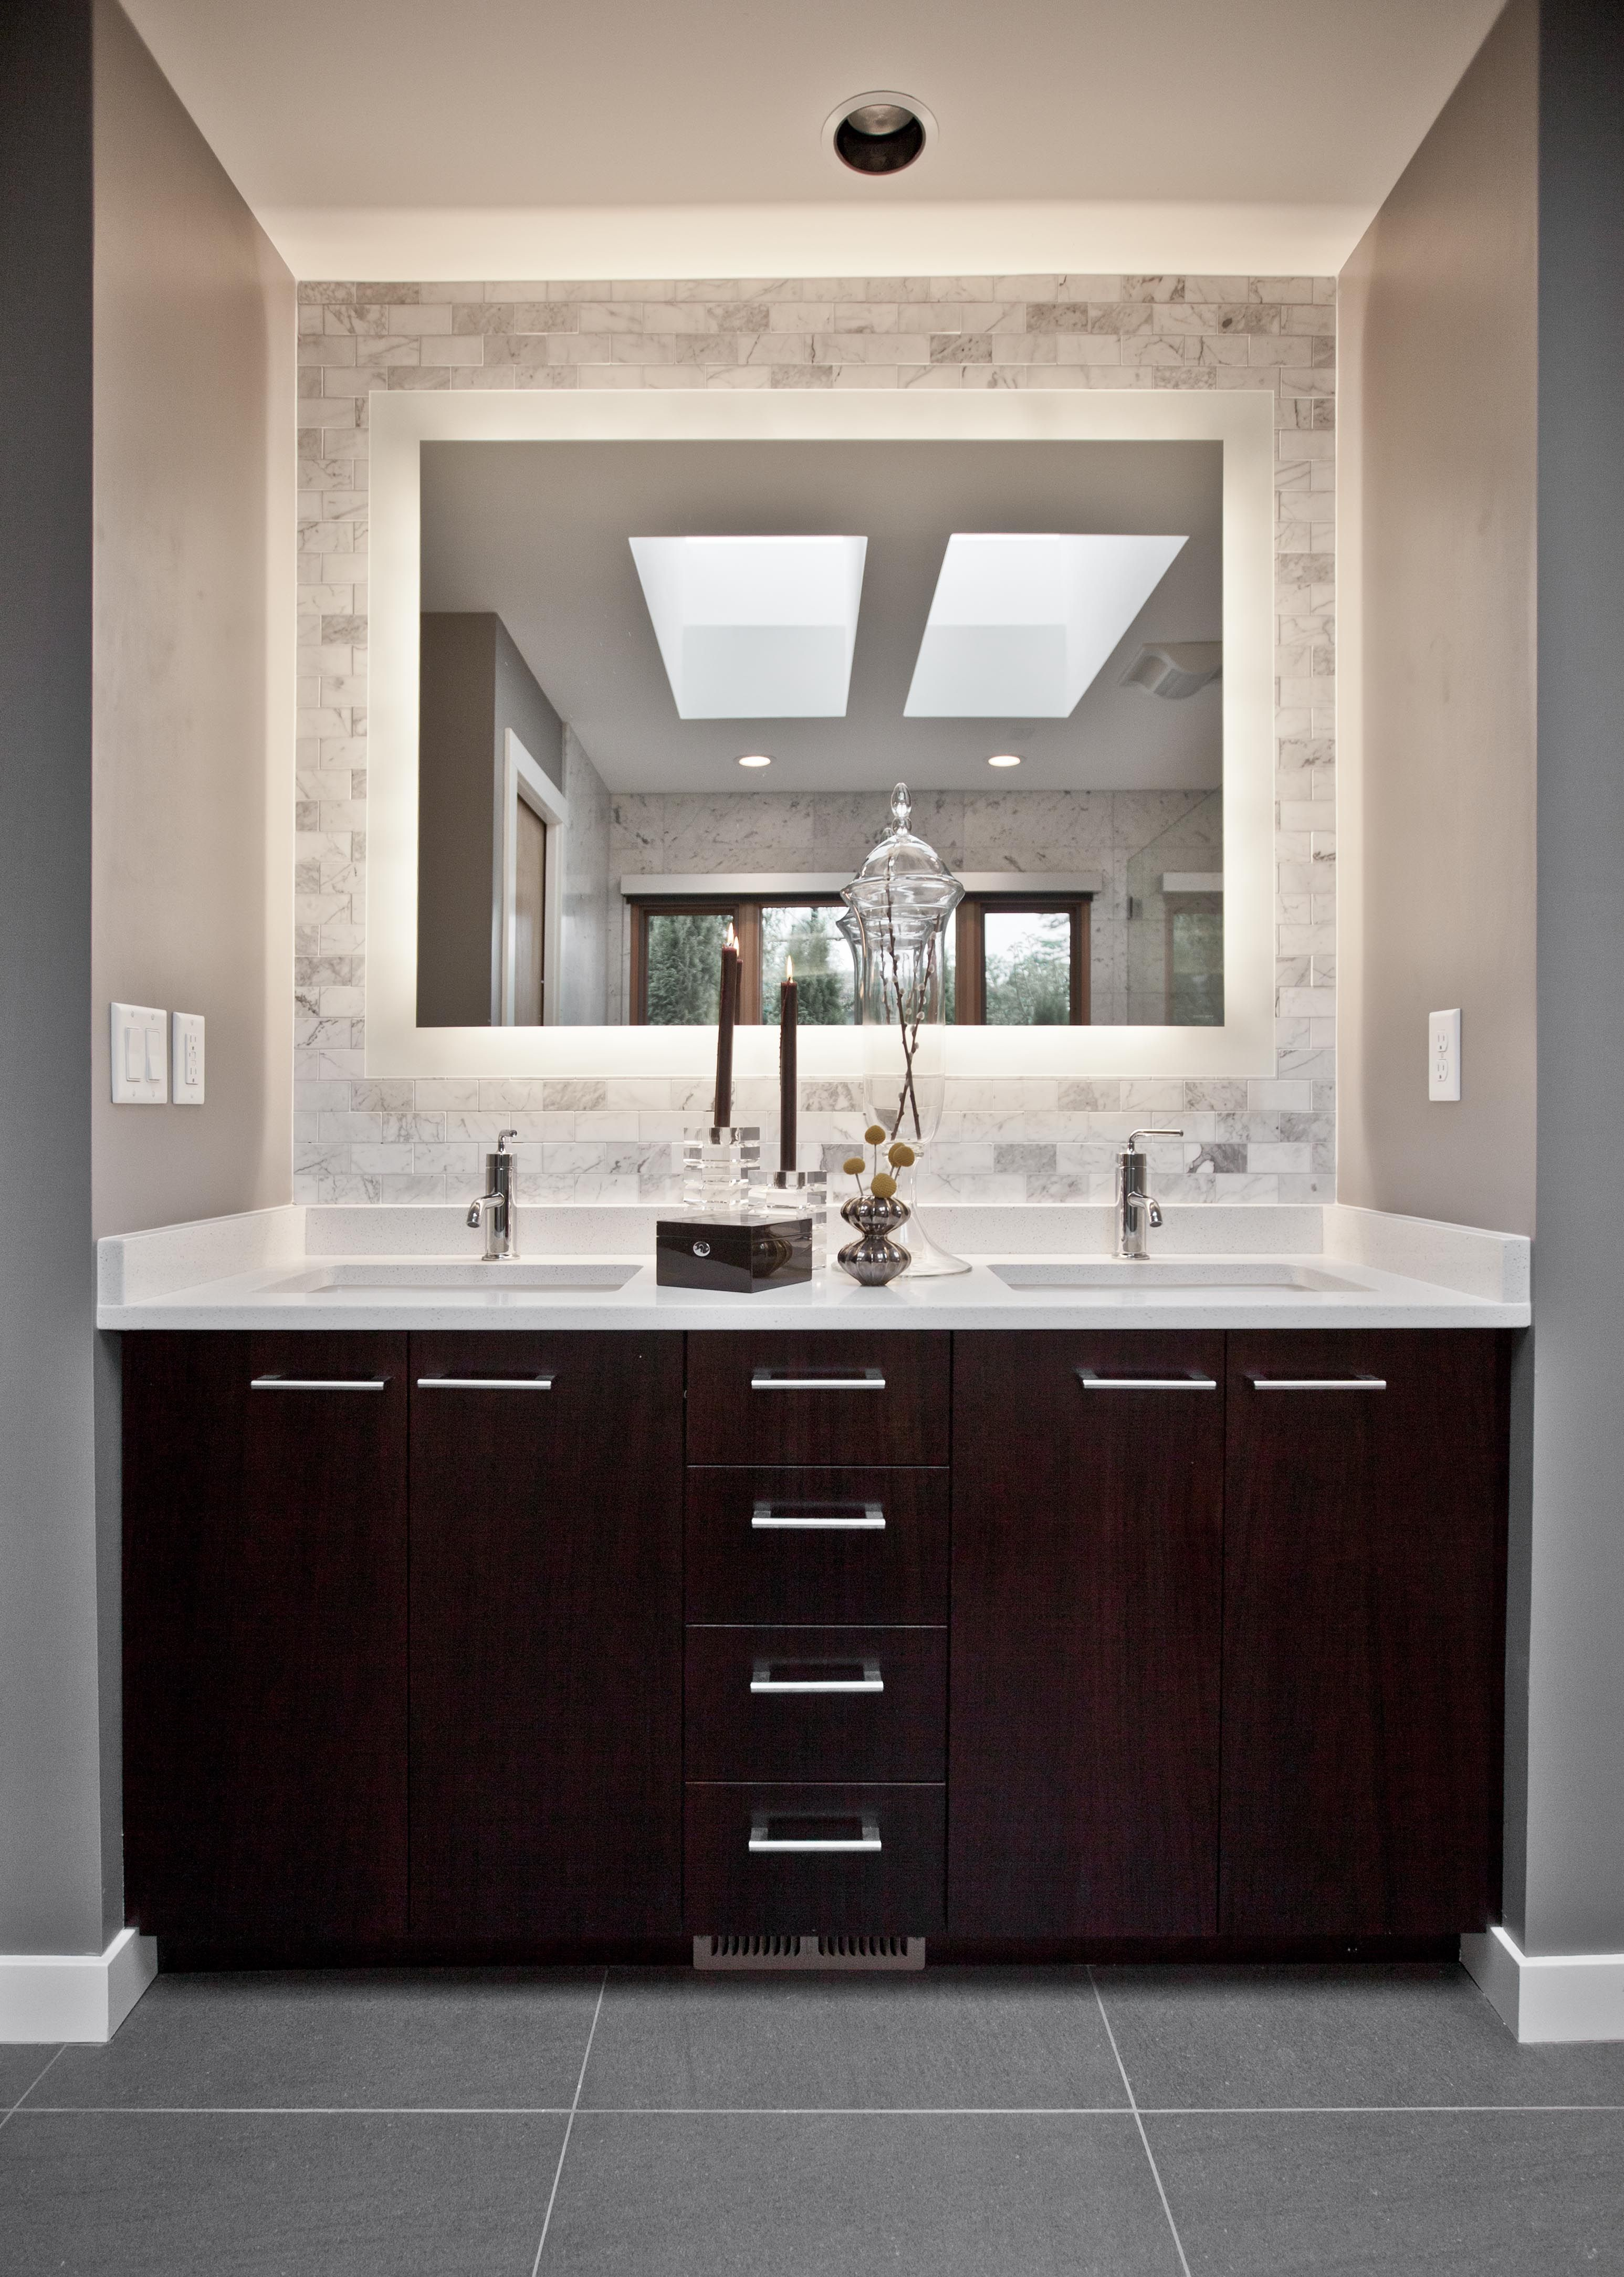 Spiegel Für Bad 45 Relaxing Bathroom Vanity Inspirations Around Our Future House